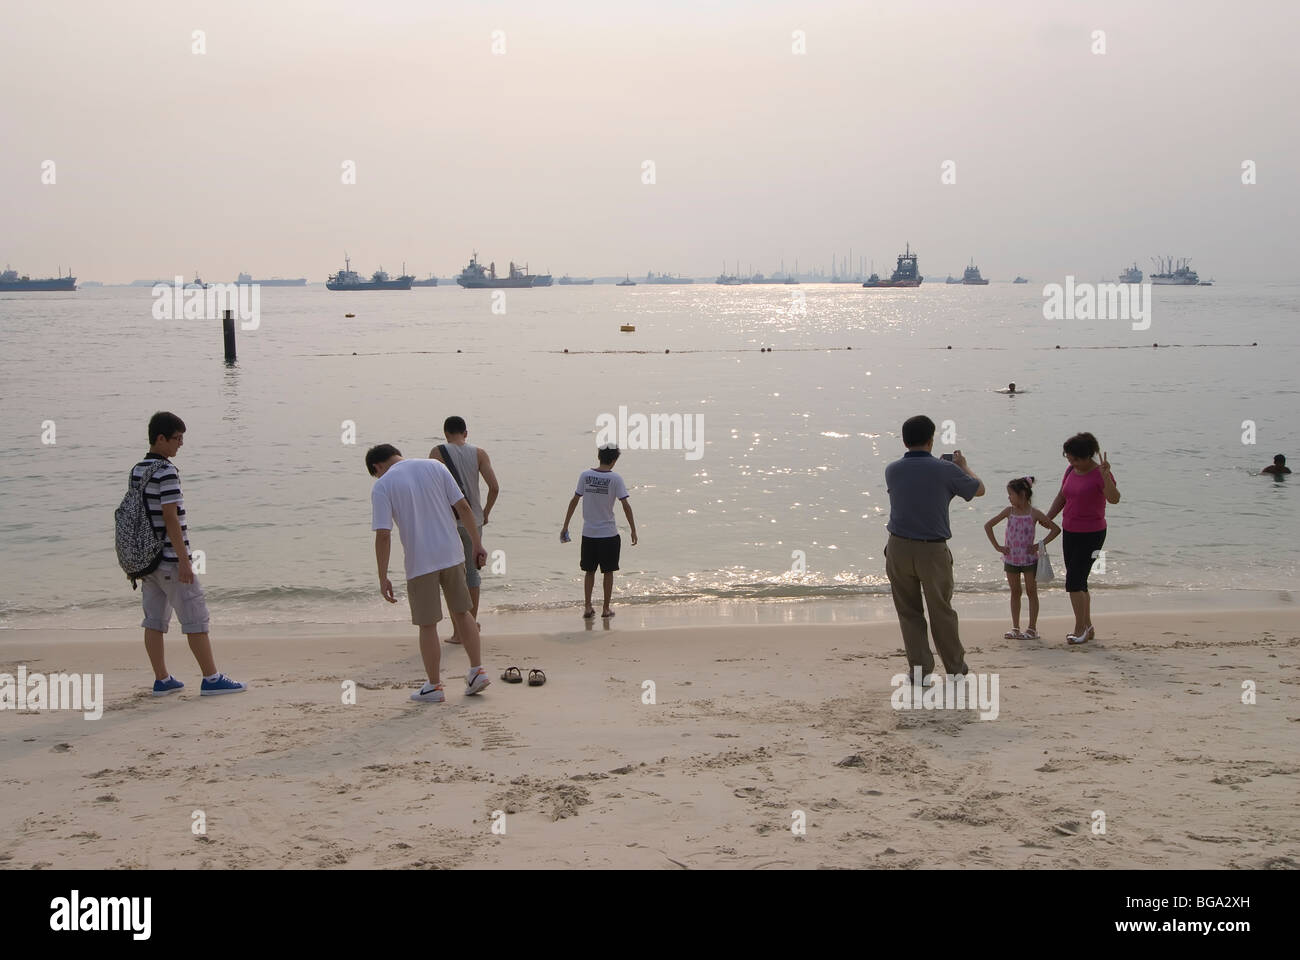 People at the edge of the sea on the beach on Sentosa Island off Singapore - Stock Image